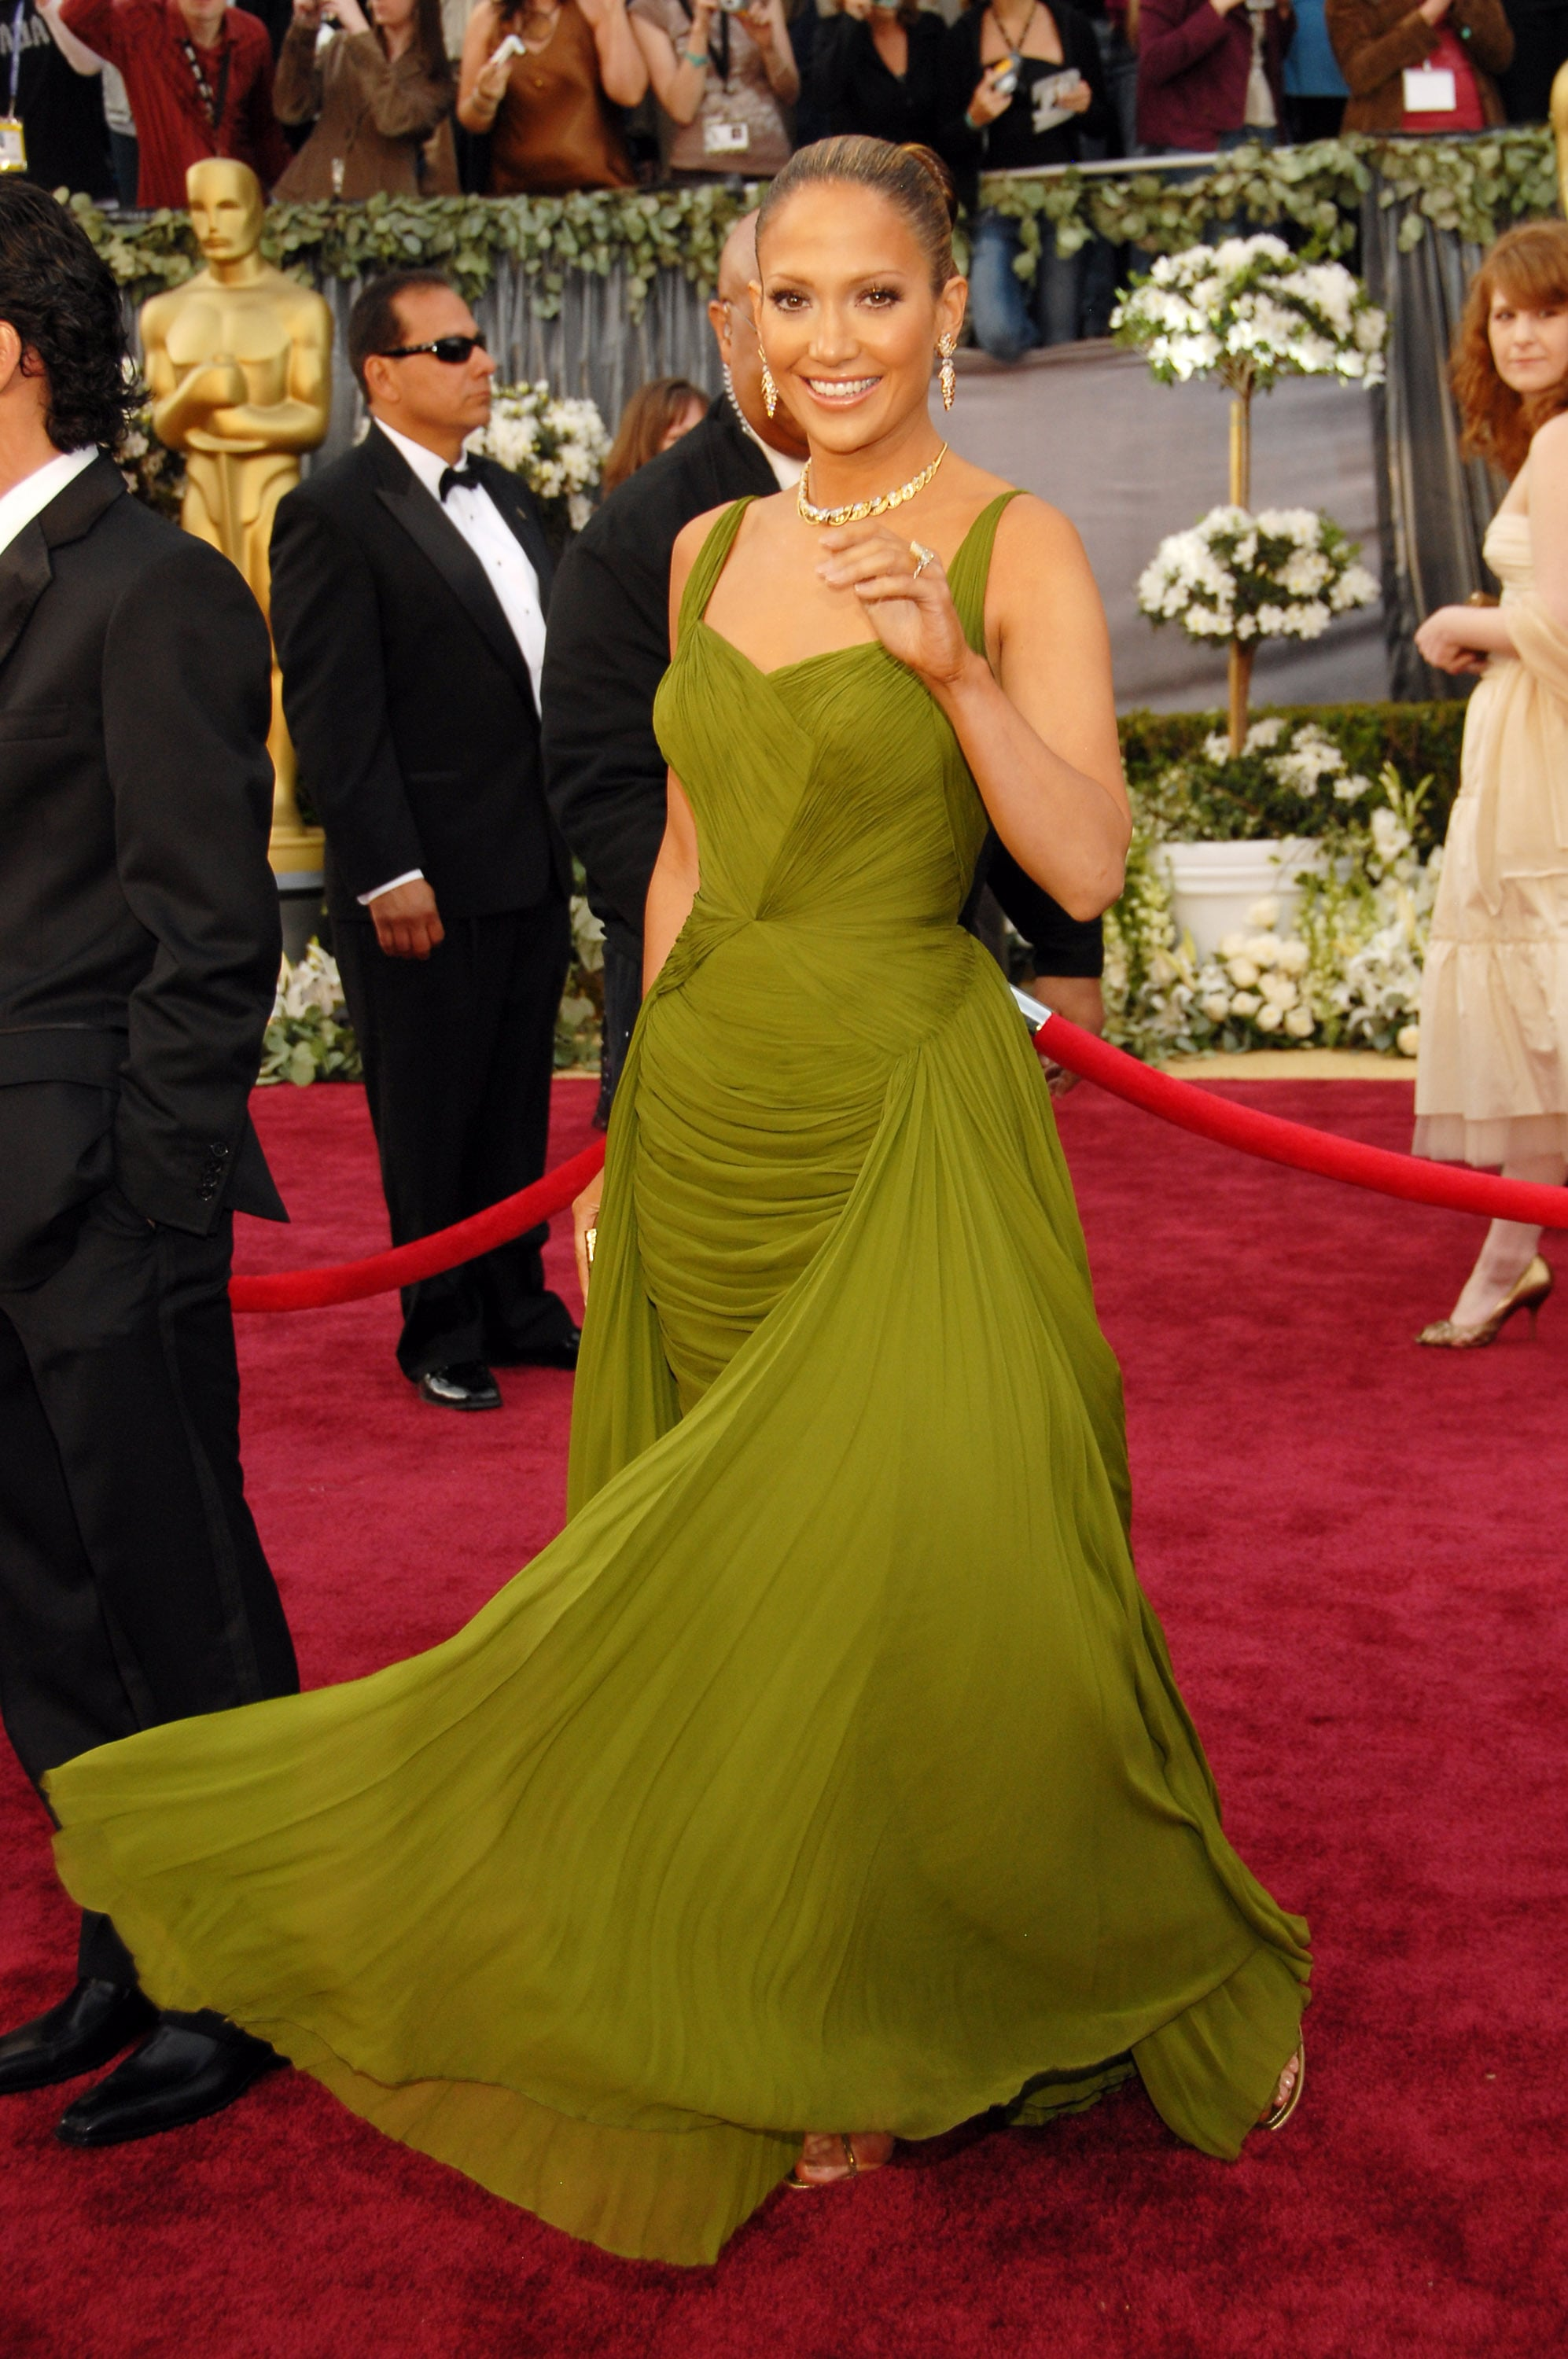 A memorable moment in an olive-hued chiffon gown at the Academy Awards in 2006.